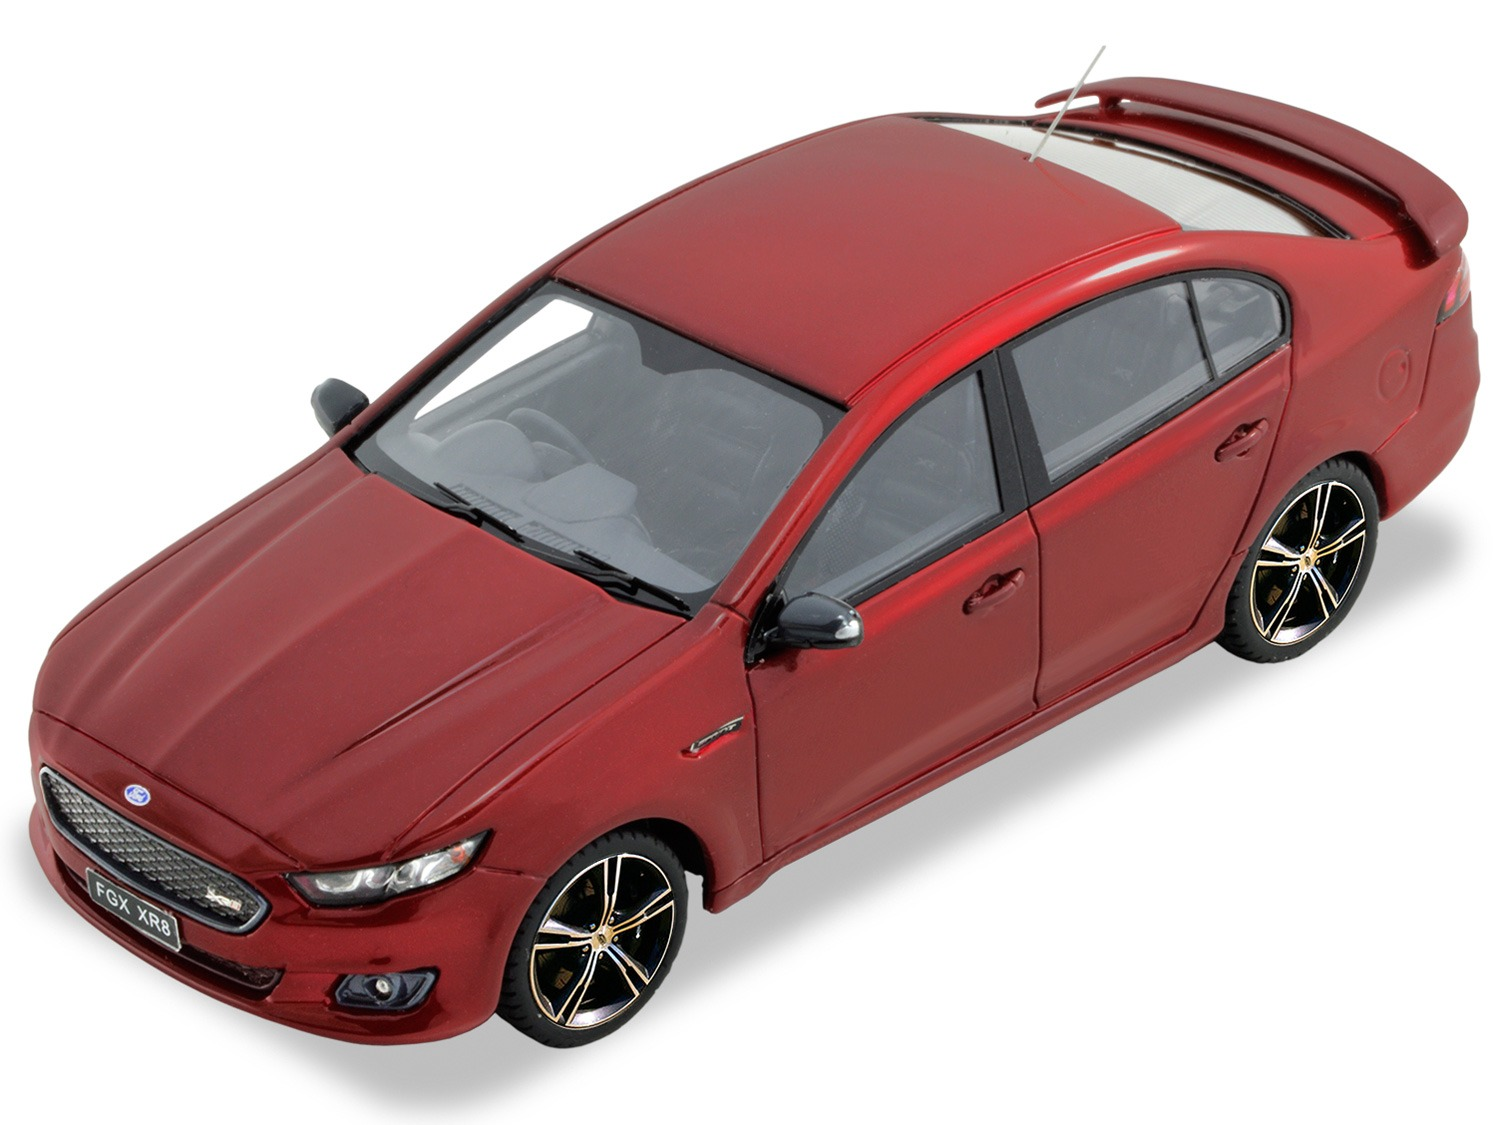 Ford FGX MKII XR8 – Emperor (Red)